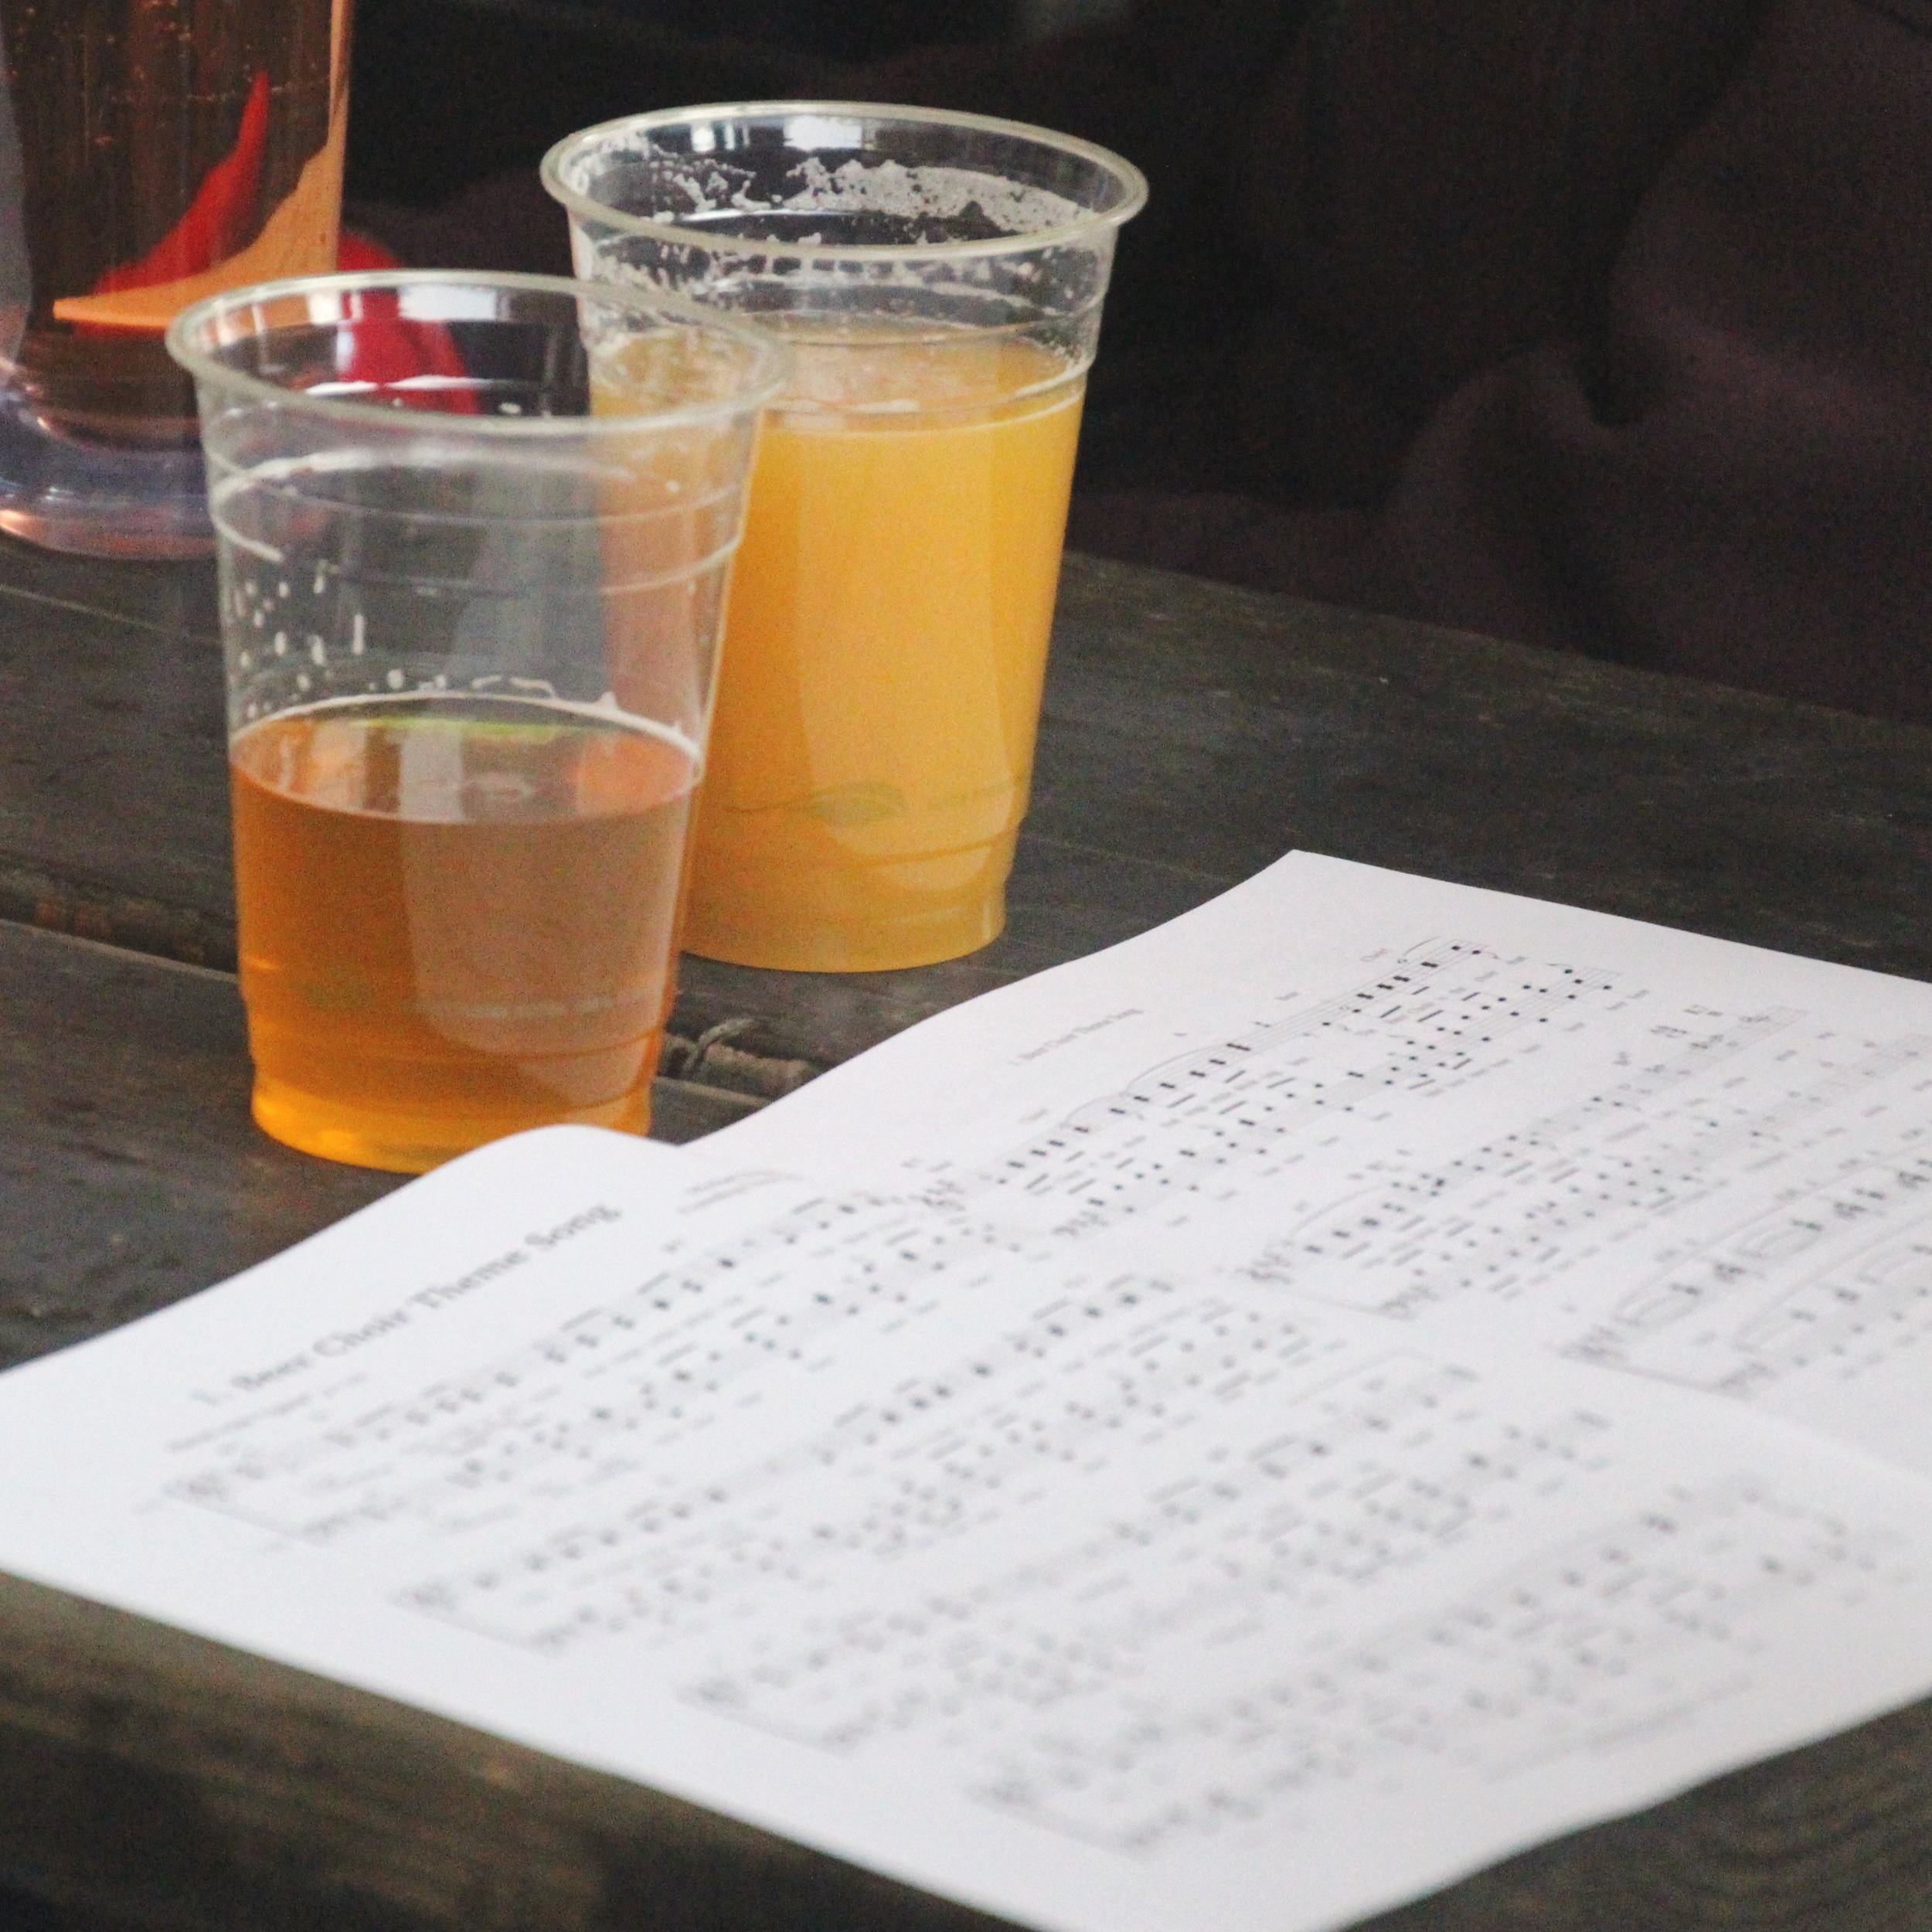 hymnal - Download your copy of the Beer Choir Hymnal! (Volume 1 Edition 2)